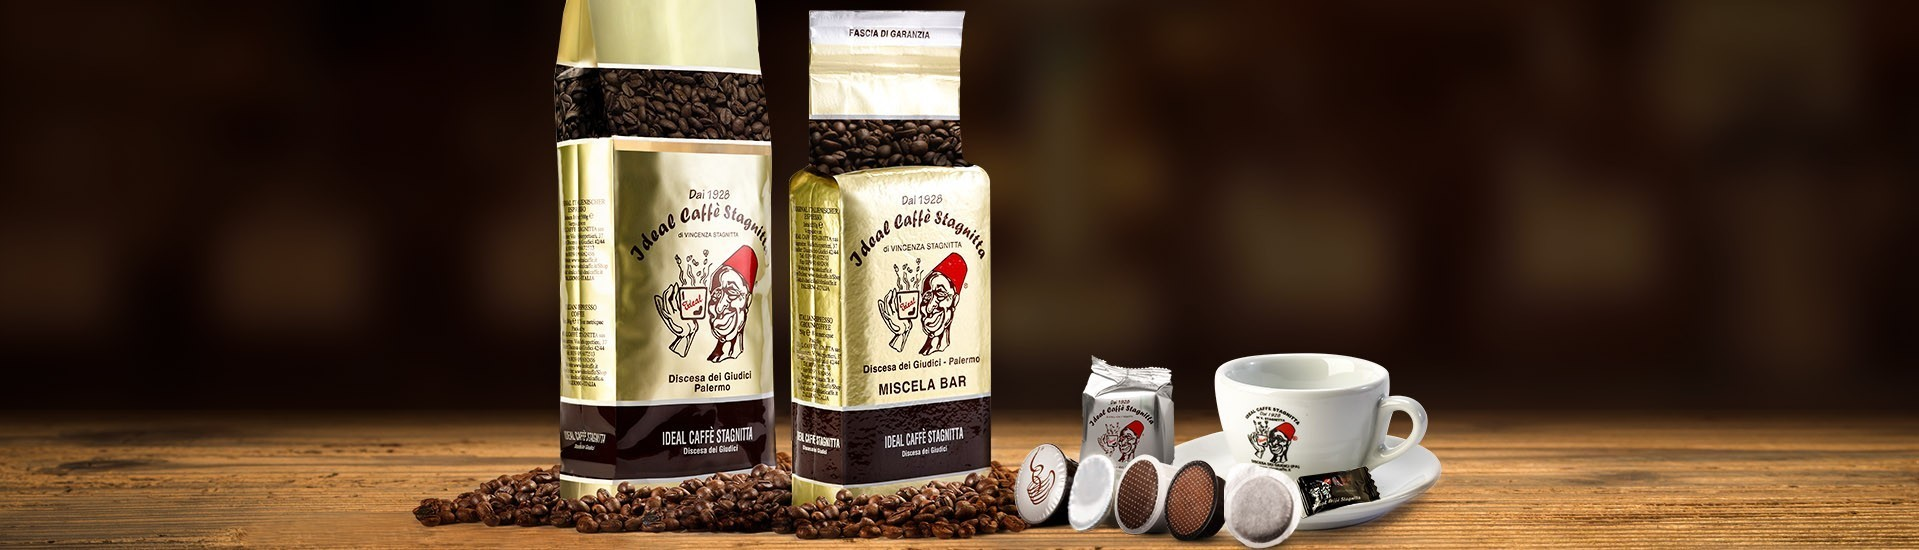 The Stagnitta Idealcaffè packages